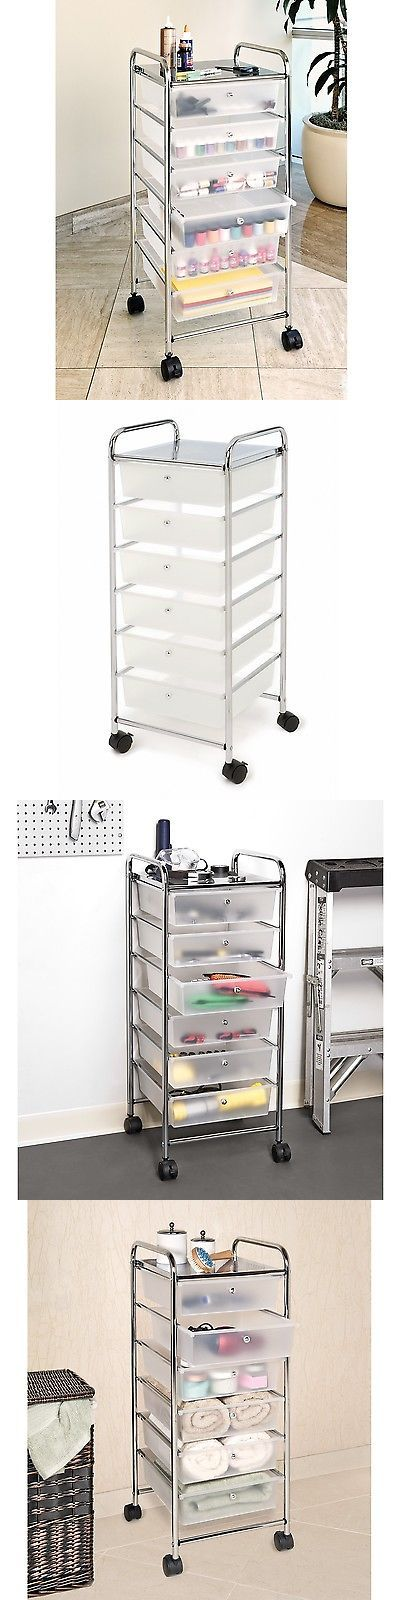 Salon and Spa Supplies: Barber Shop Equipment Supplies Storage Accessories Stuff Cart Trolley Salon Best BUY IT NOW ONLY: $79.95